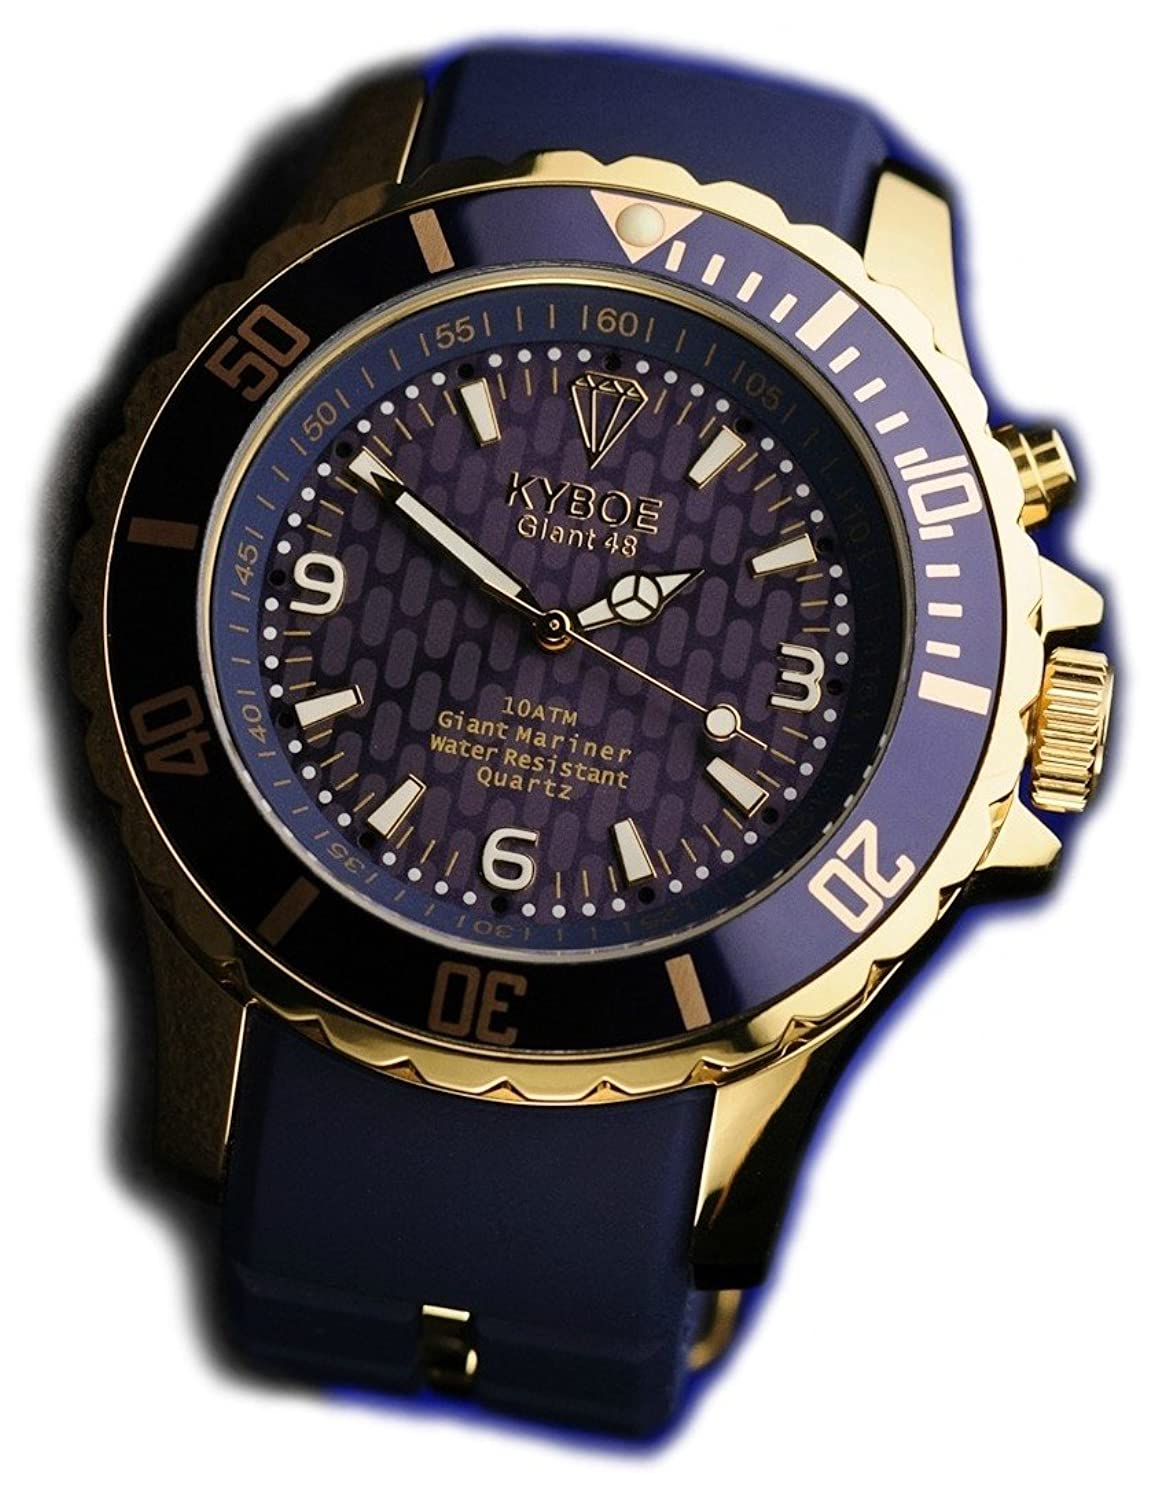 KYBOE! Gold horloge Series KYG-002-48 (48mm)